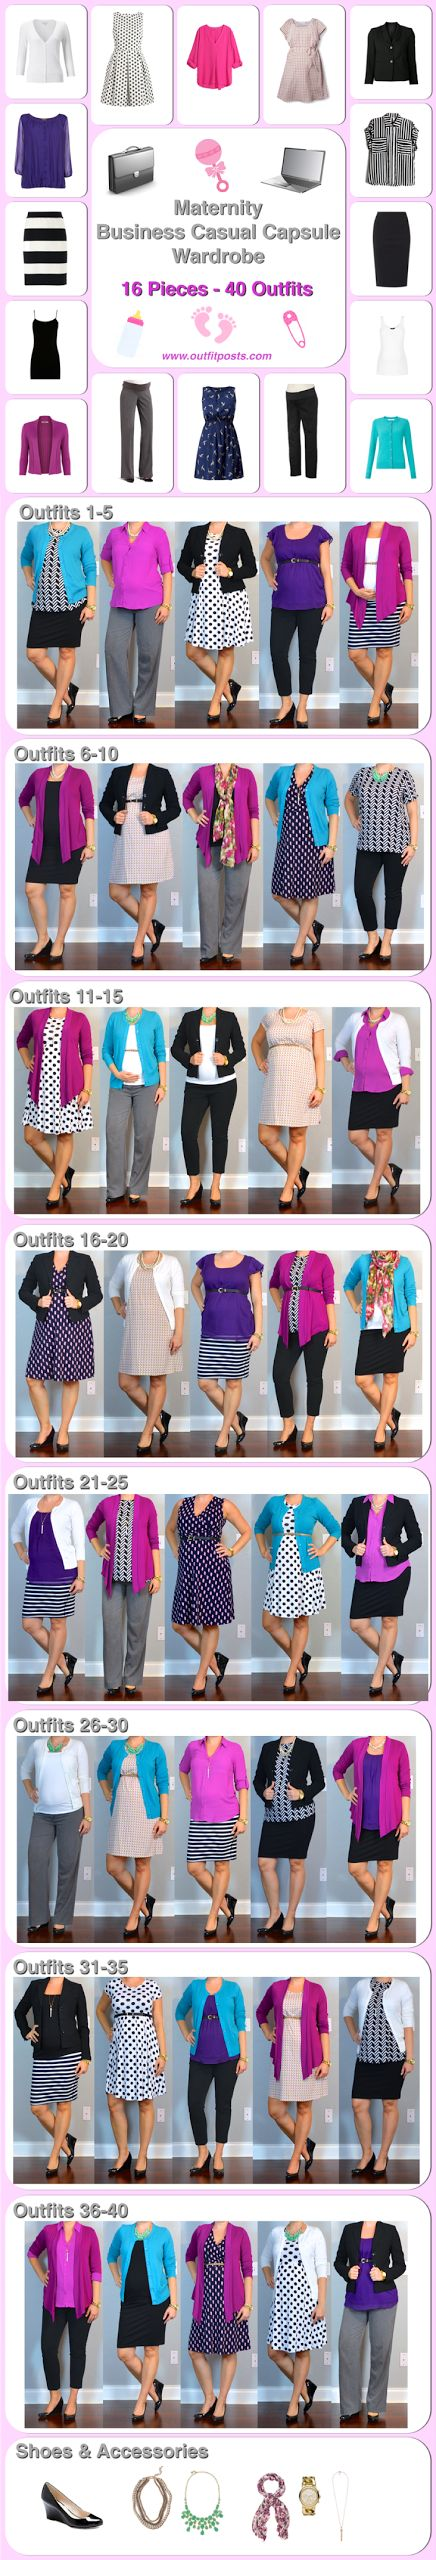 Outfit Posts: maternity capsule wardrobe: business casual